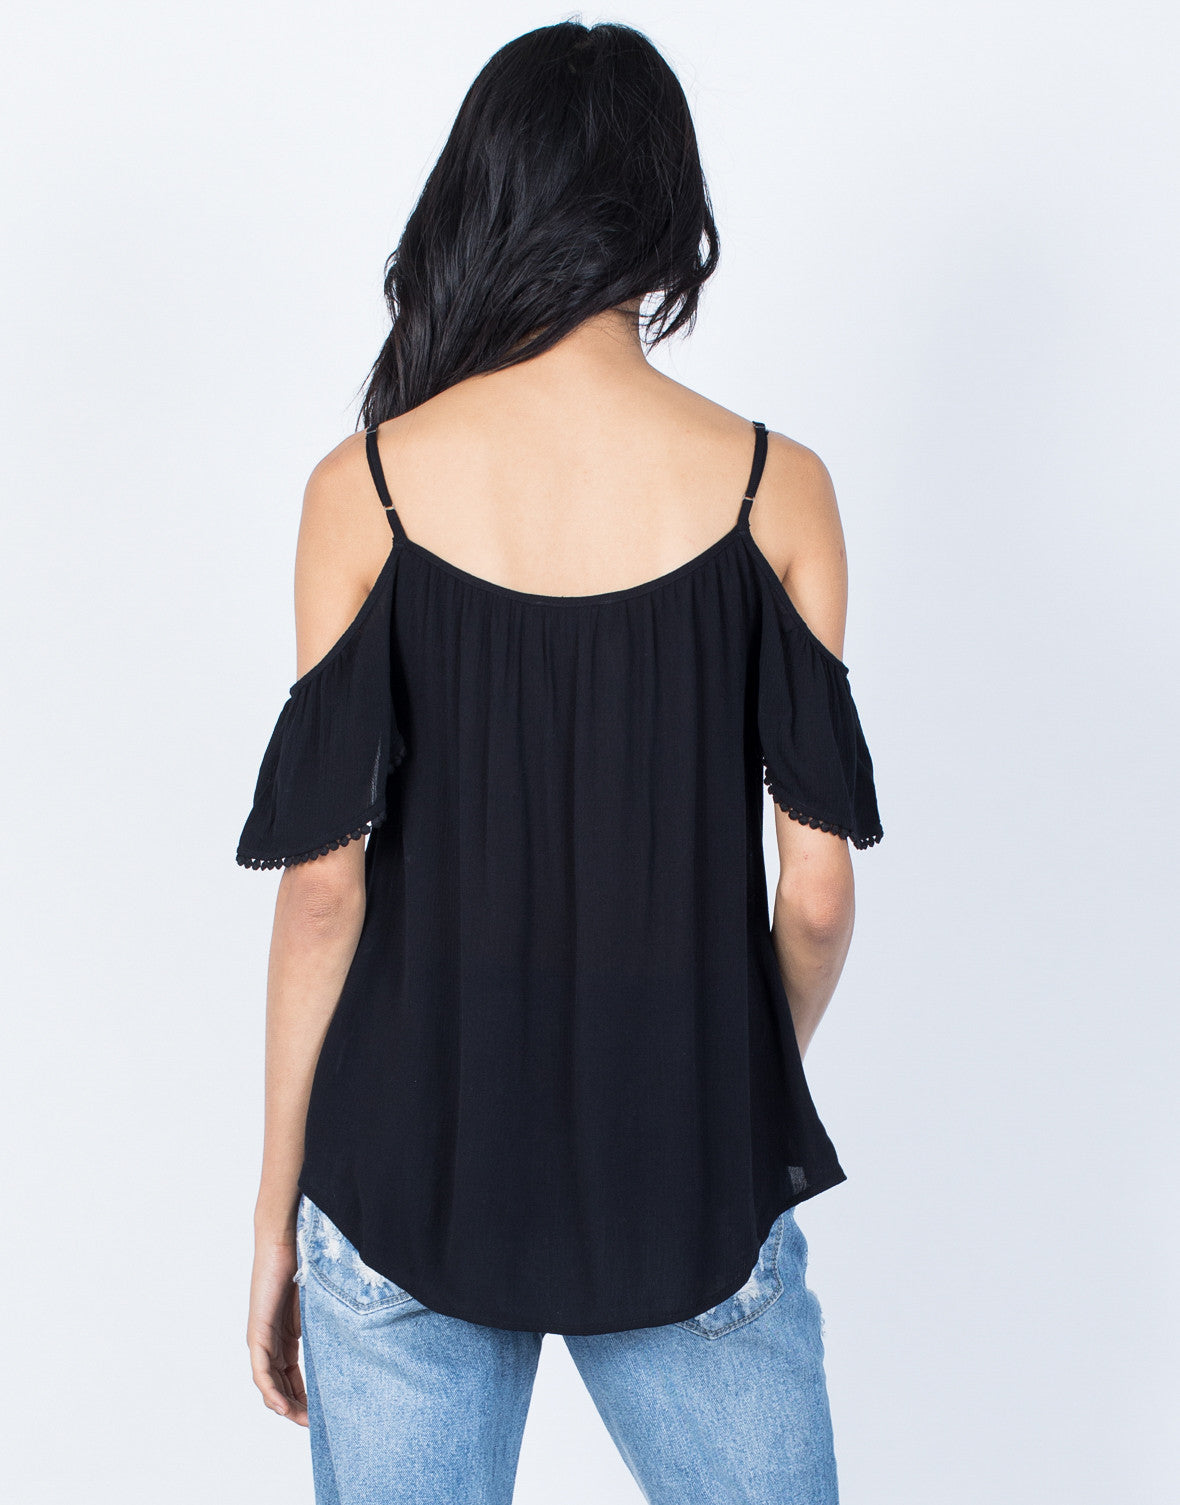 Black Easygoing Boho Top - Back View